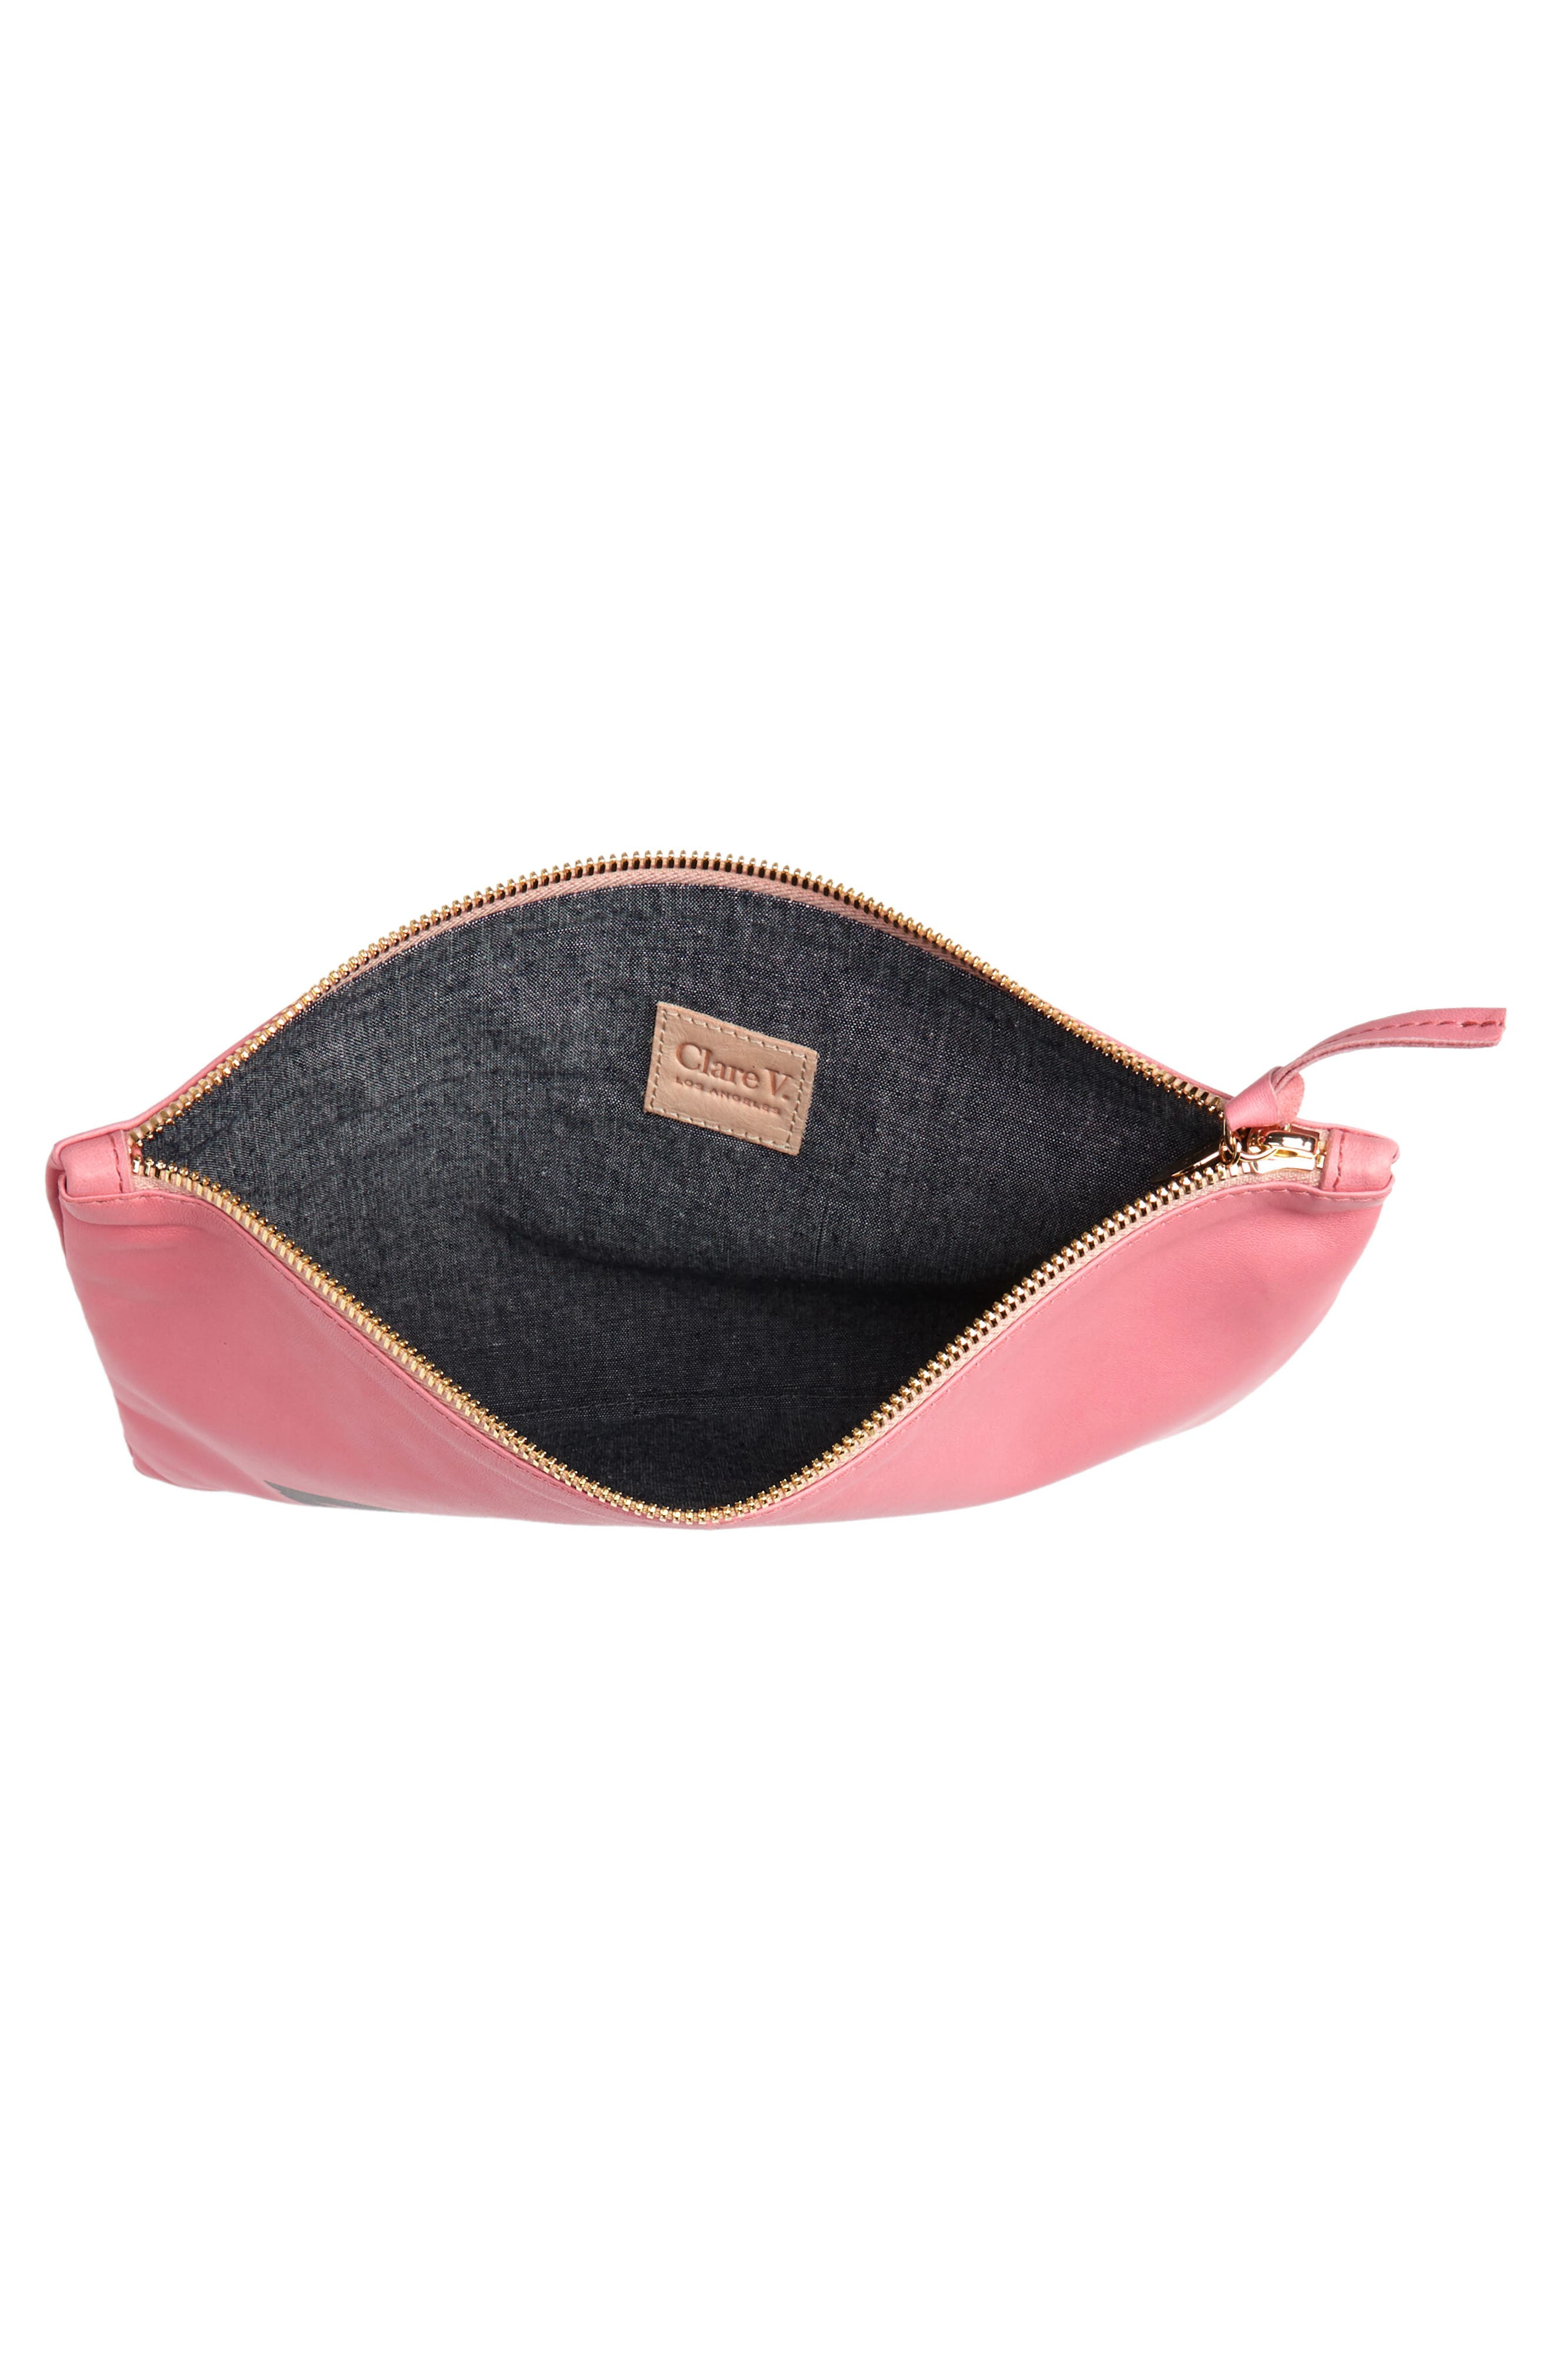 Eyes Leather Clutch,                             Alternate thumbnail 4, color,                             650